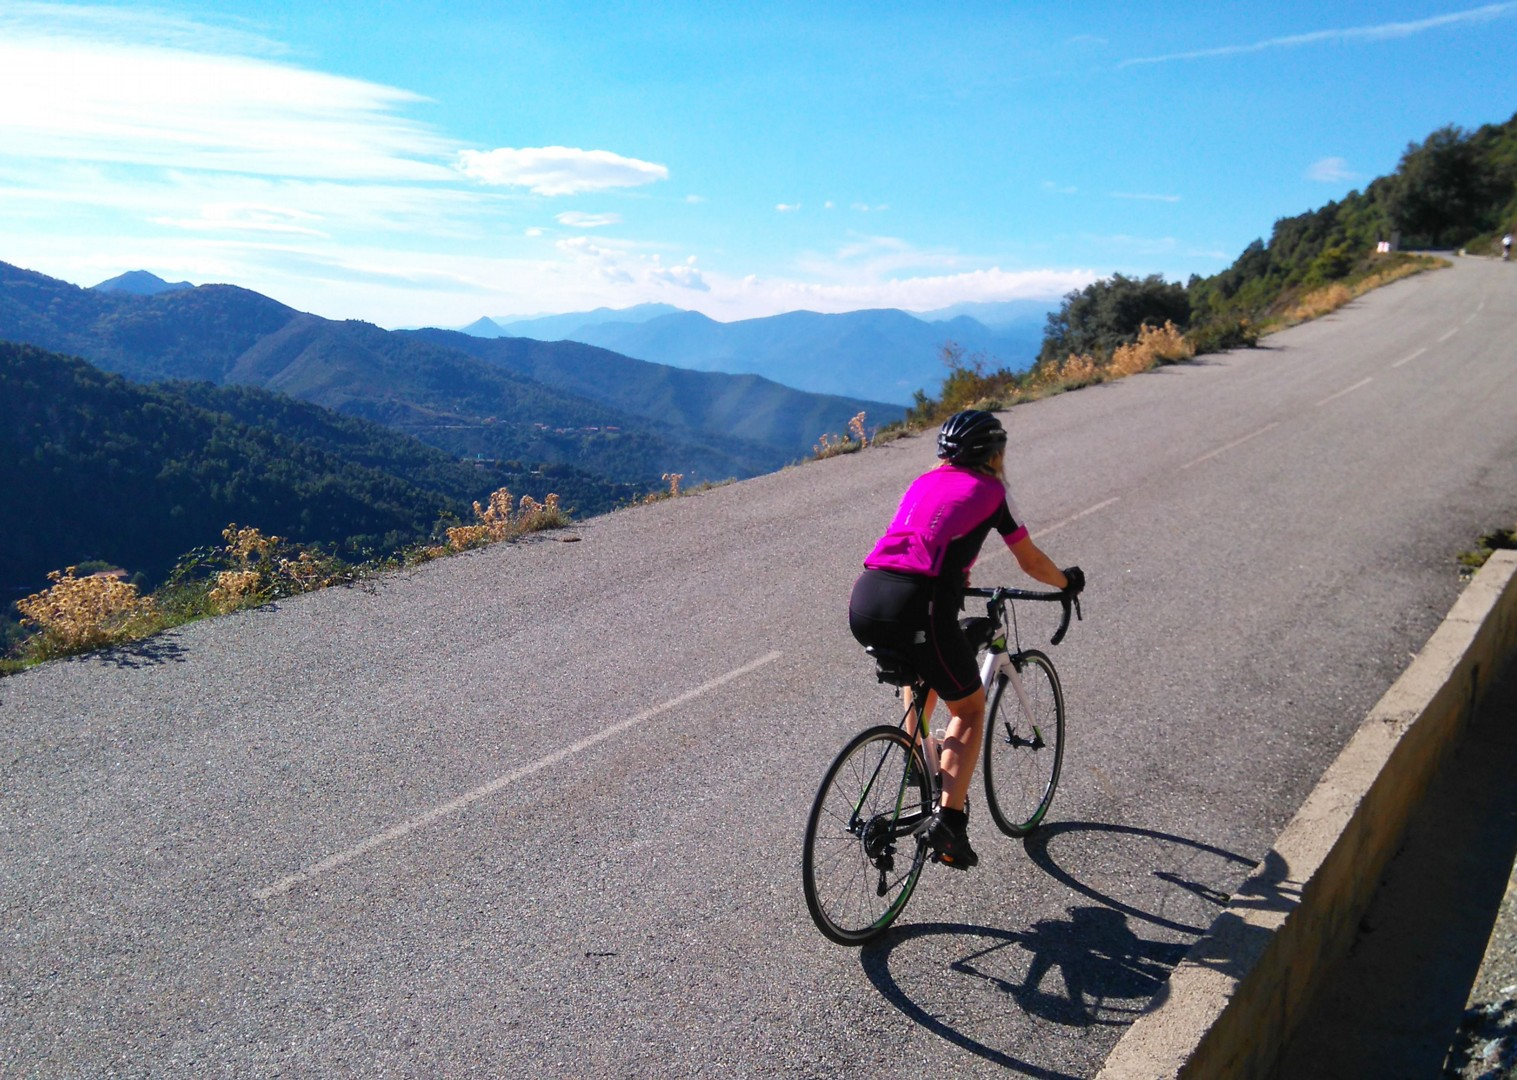 road-cycling-holiday-in-france-corsica-france-southern.jpg - France - Corsica - Southern Secrets - Guided Road Cycling Holiday - Road Cycling